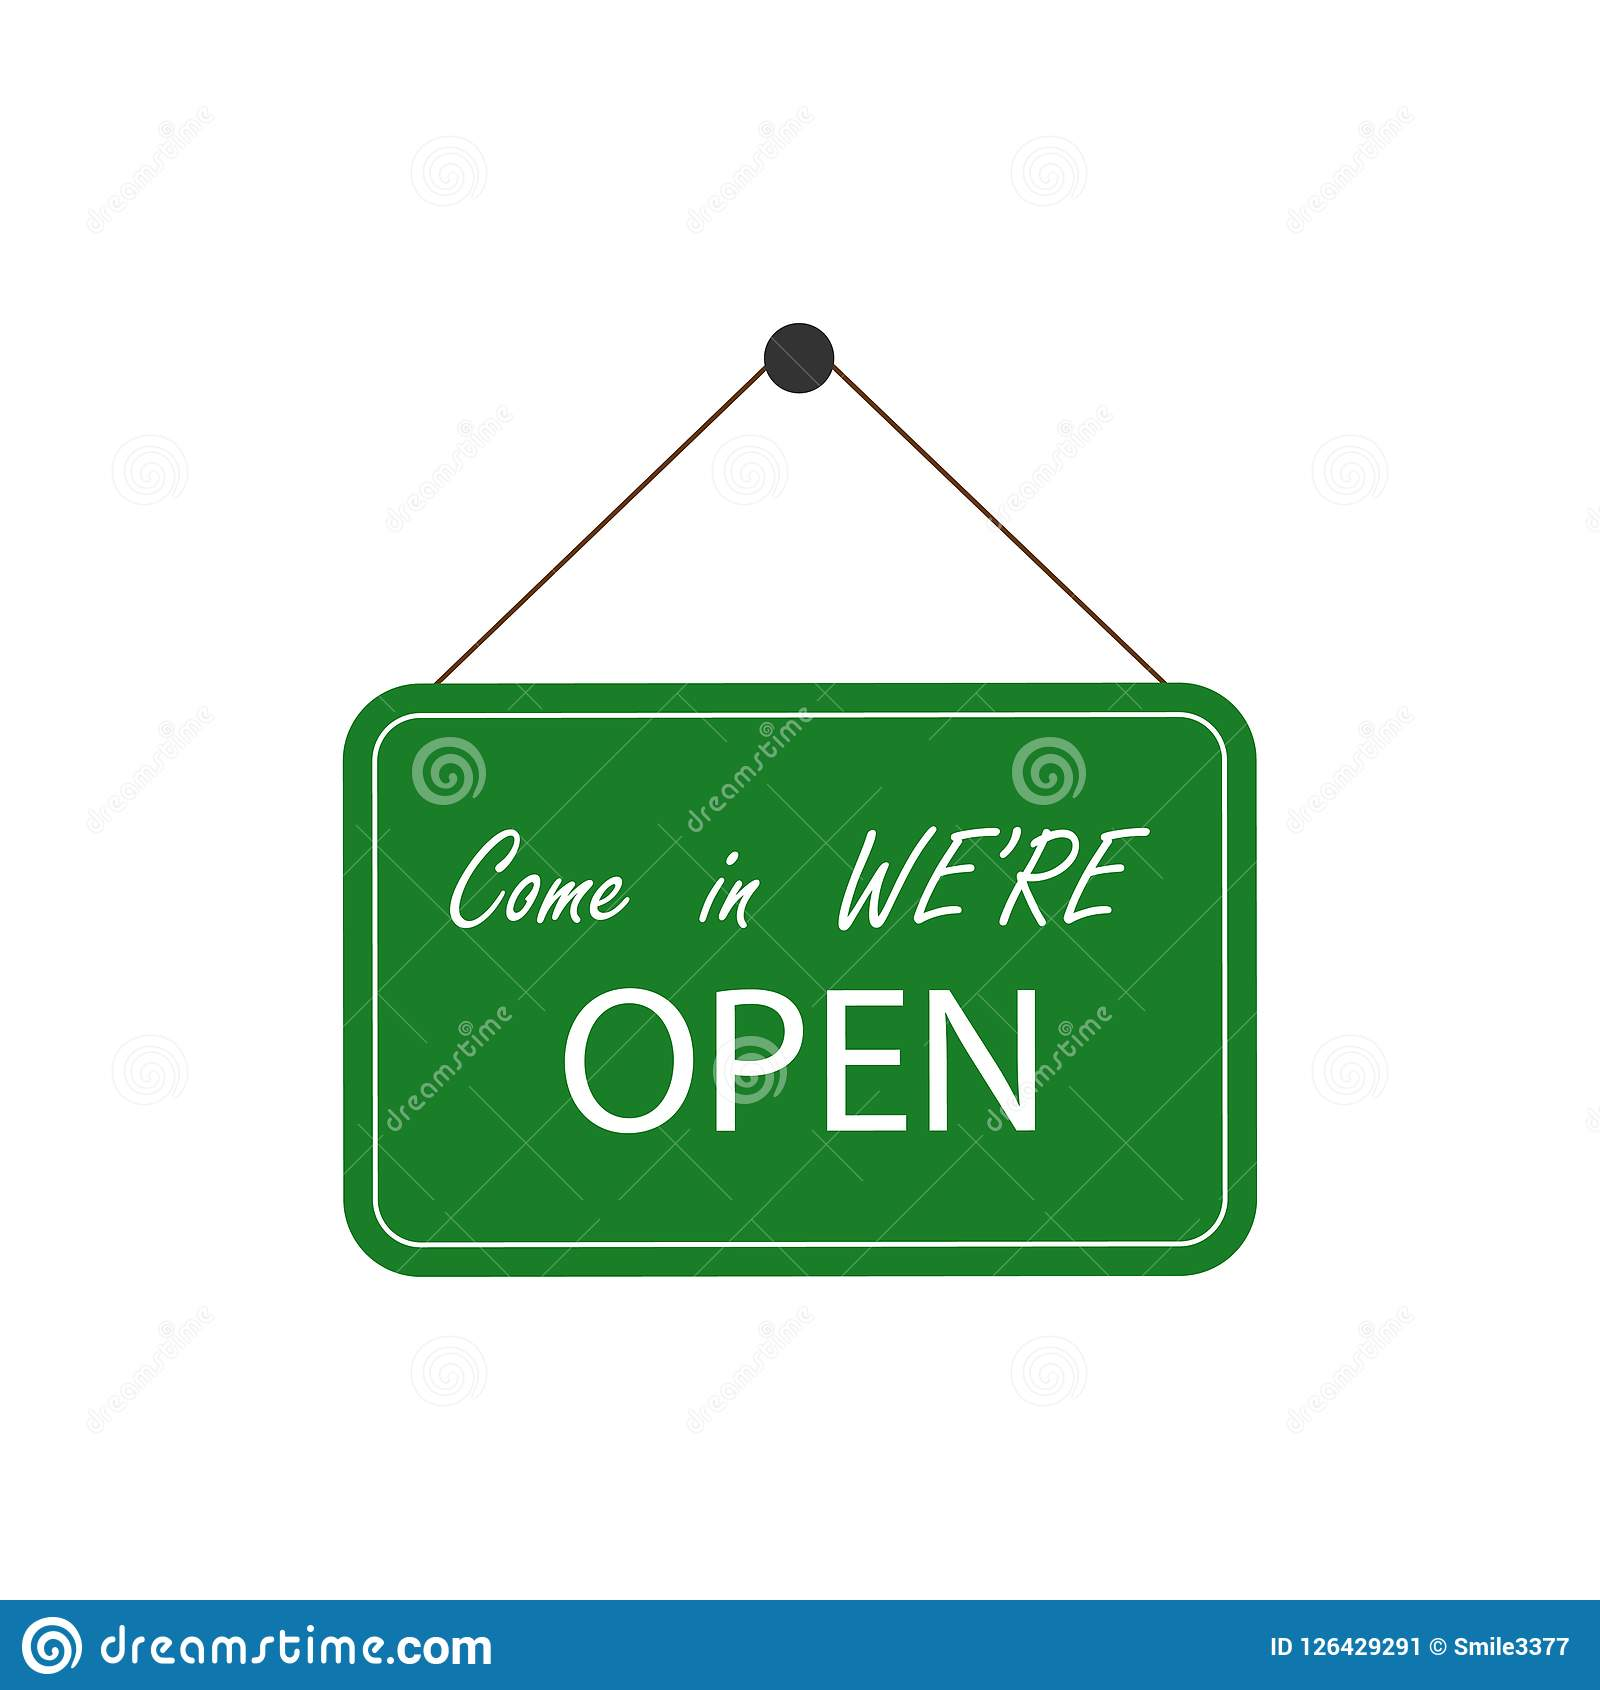 come in we re open business sign sign green stock vector